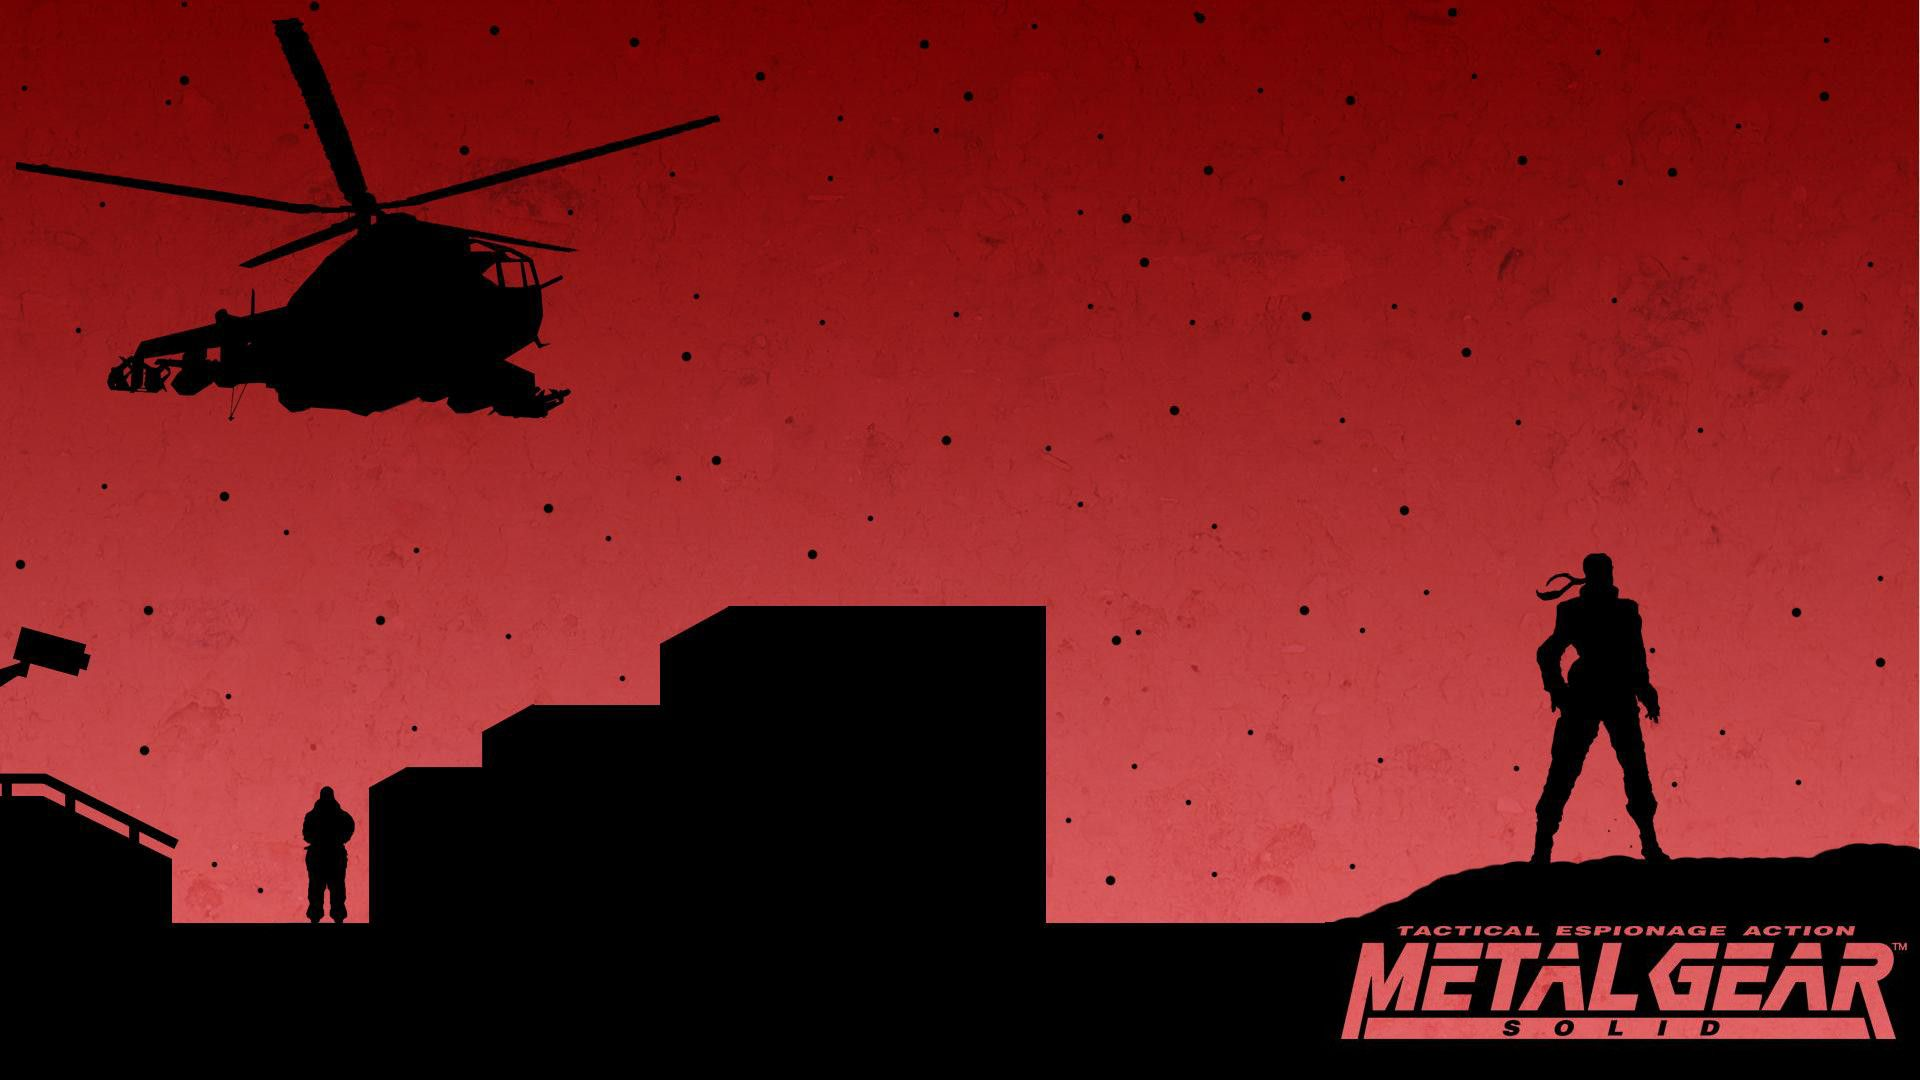 Metal Gear Matching Wallpapers To Cycle Through Metal Gear